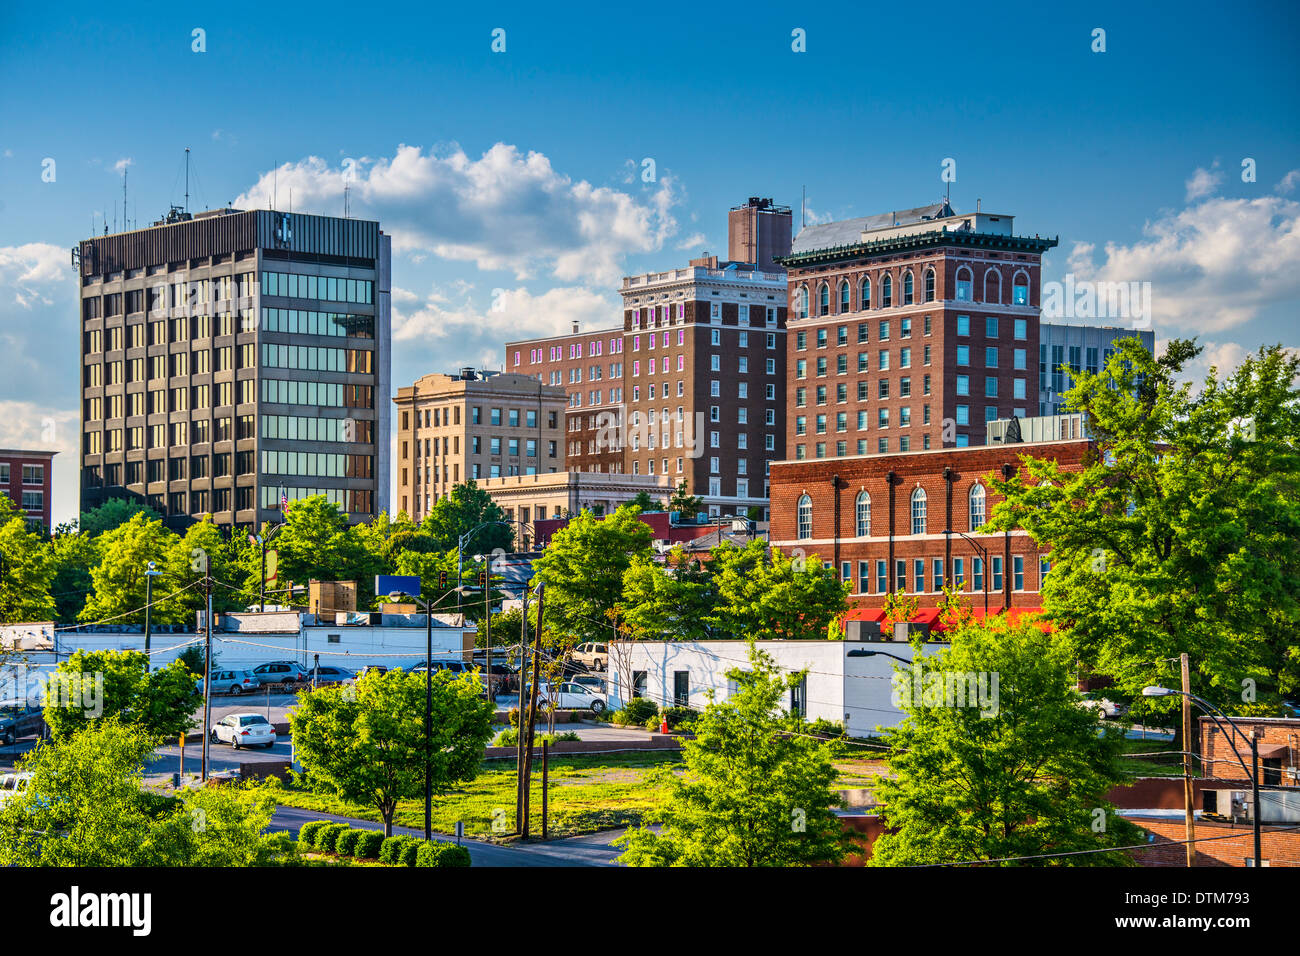 Greenville, South Carolina, USA downtown buildings. - Stock Image